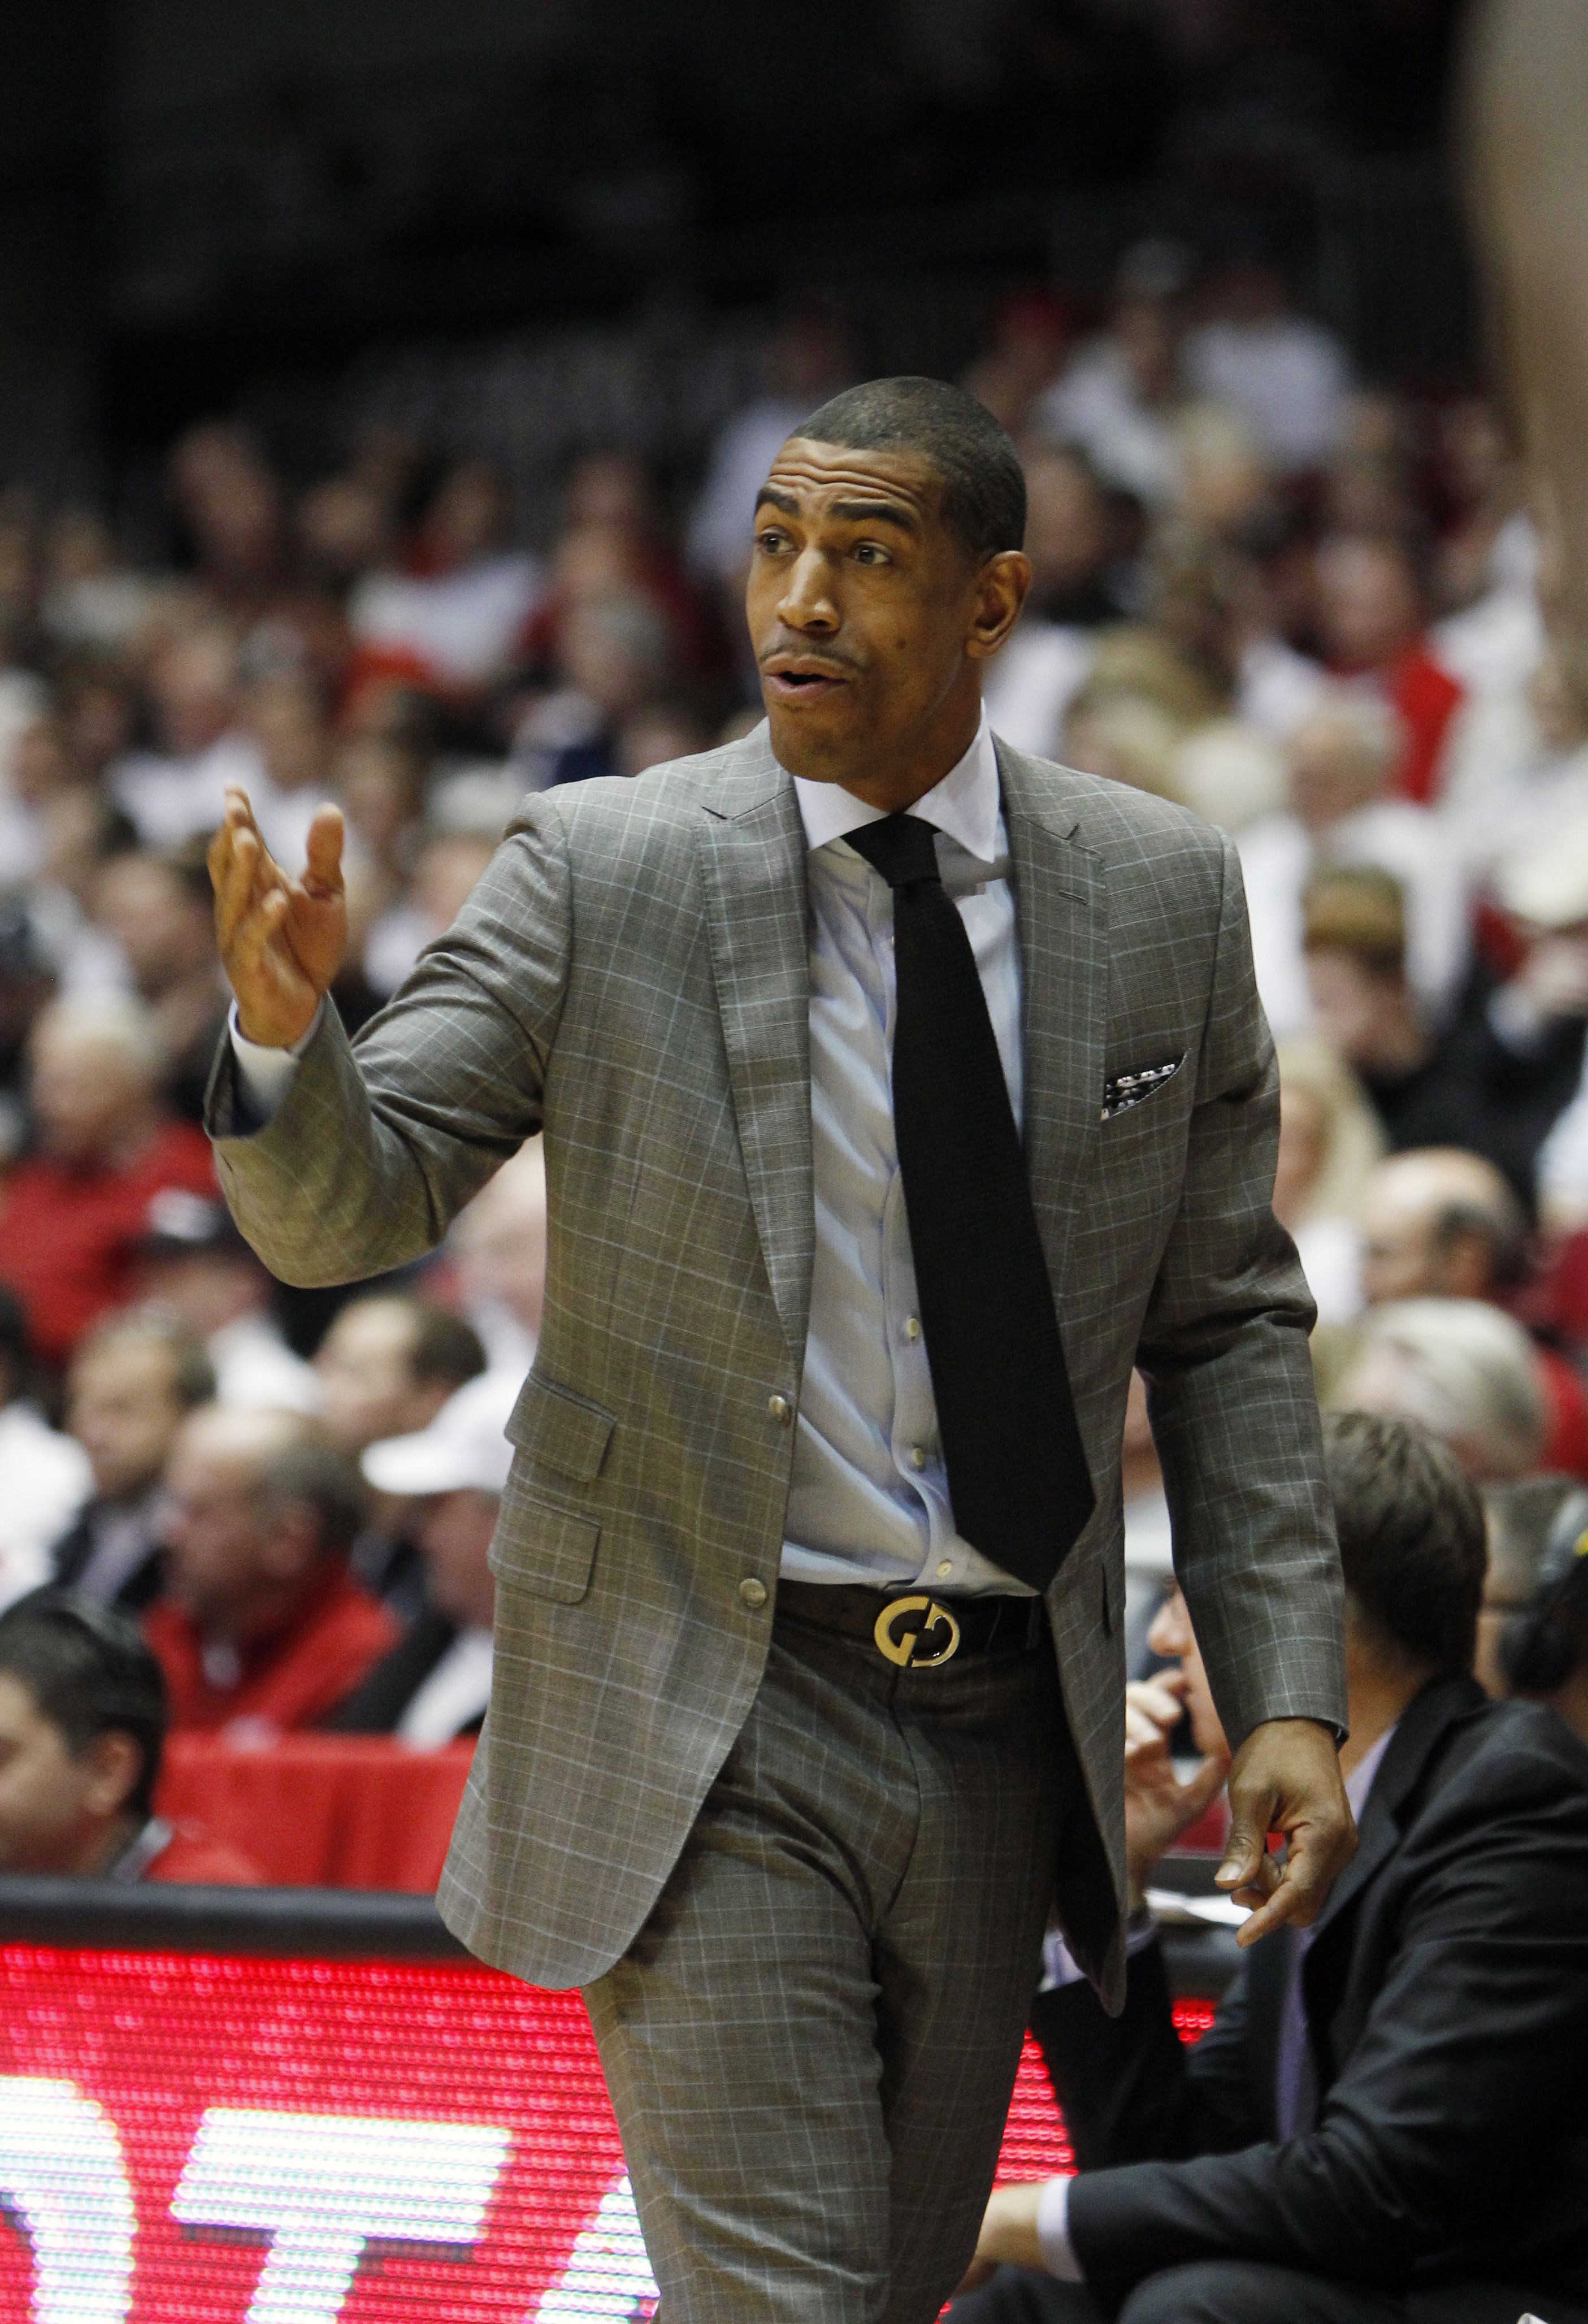 UConn's head coach Kevin Ollie gives instructions against Cincinnati in the first half of an NCAA college basketball game, Thursday, Jan. 29, 2015, in Cincinnati. (AP Photo/Frank Victores)